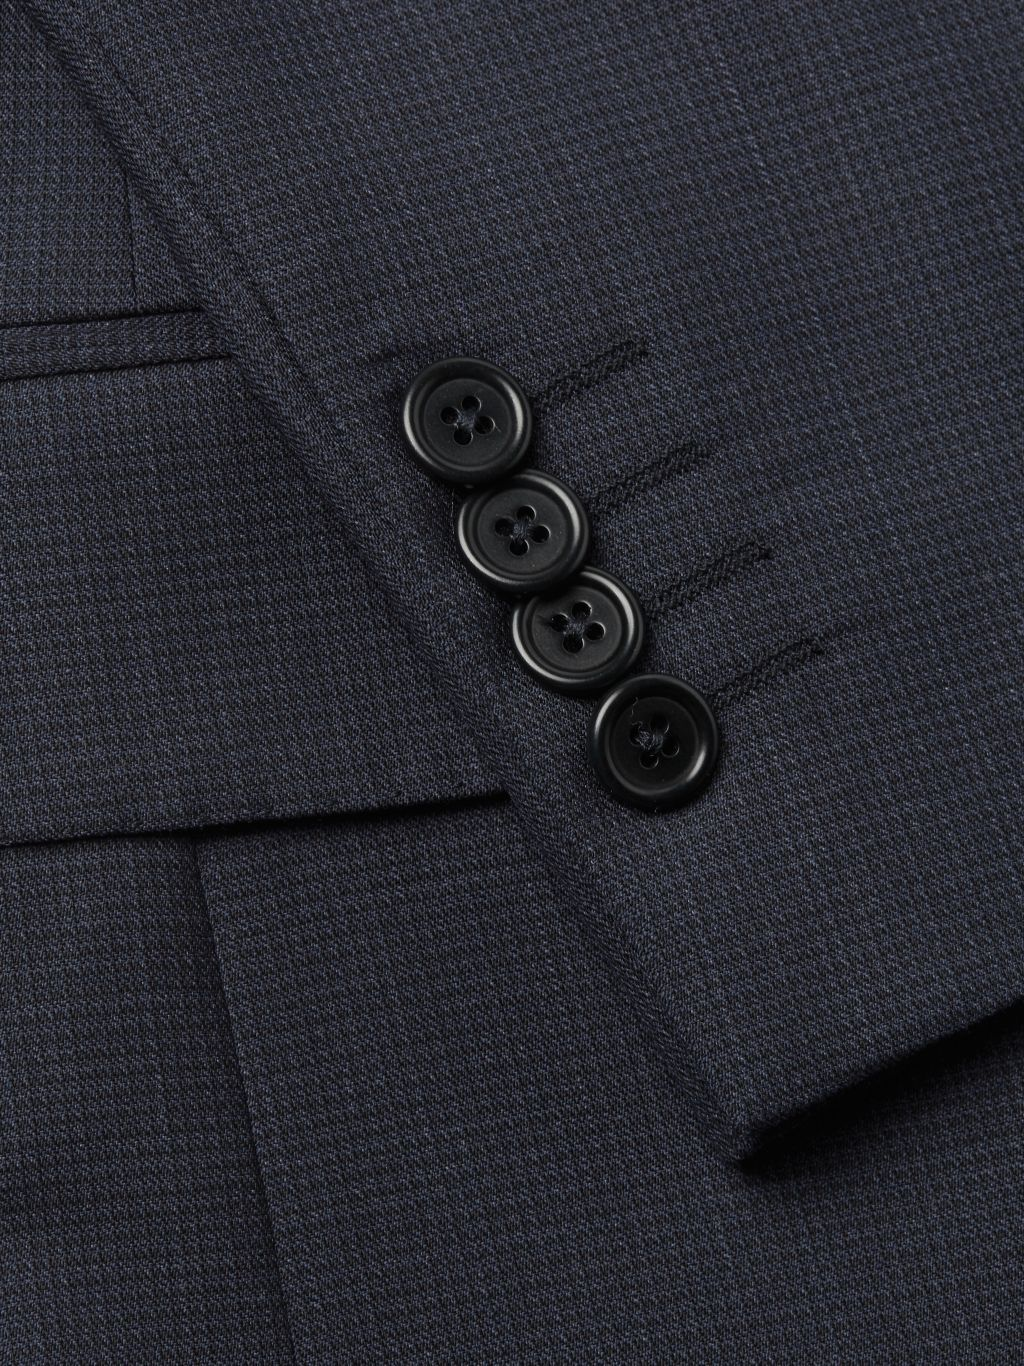 Saks Fifth Avenue Made in Italy Classic-Fit Wool Suit